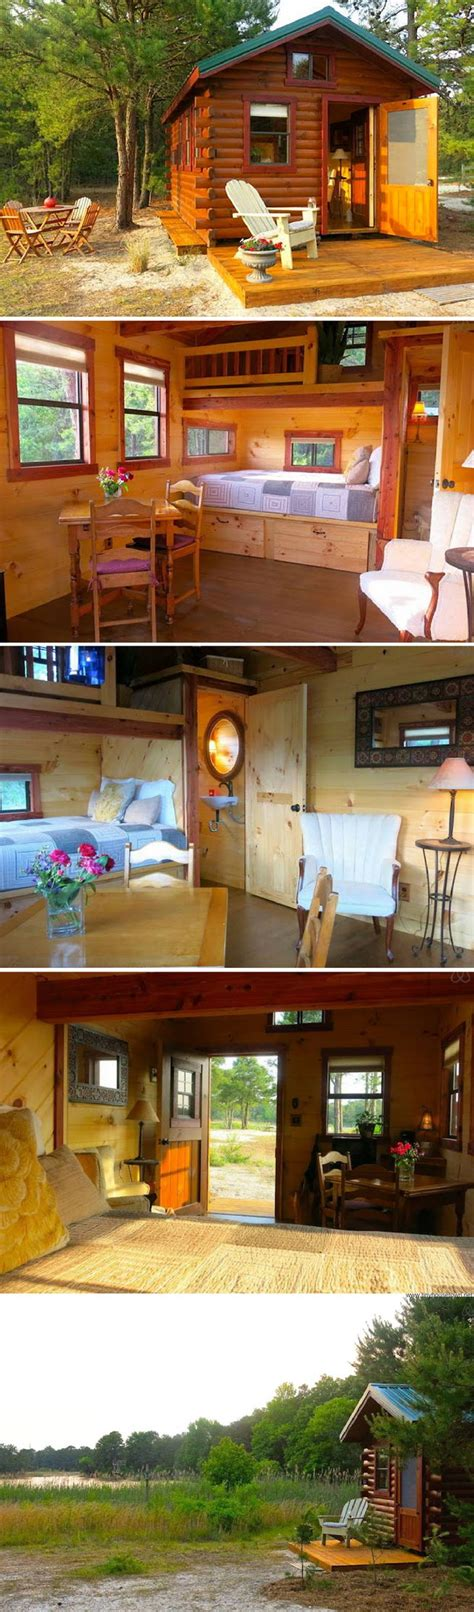 Small Homes For Rent Nj 1000 Ideas About Tiny Houses On Tiny Homes